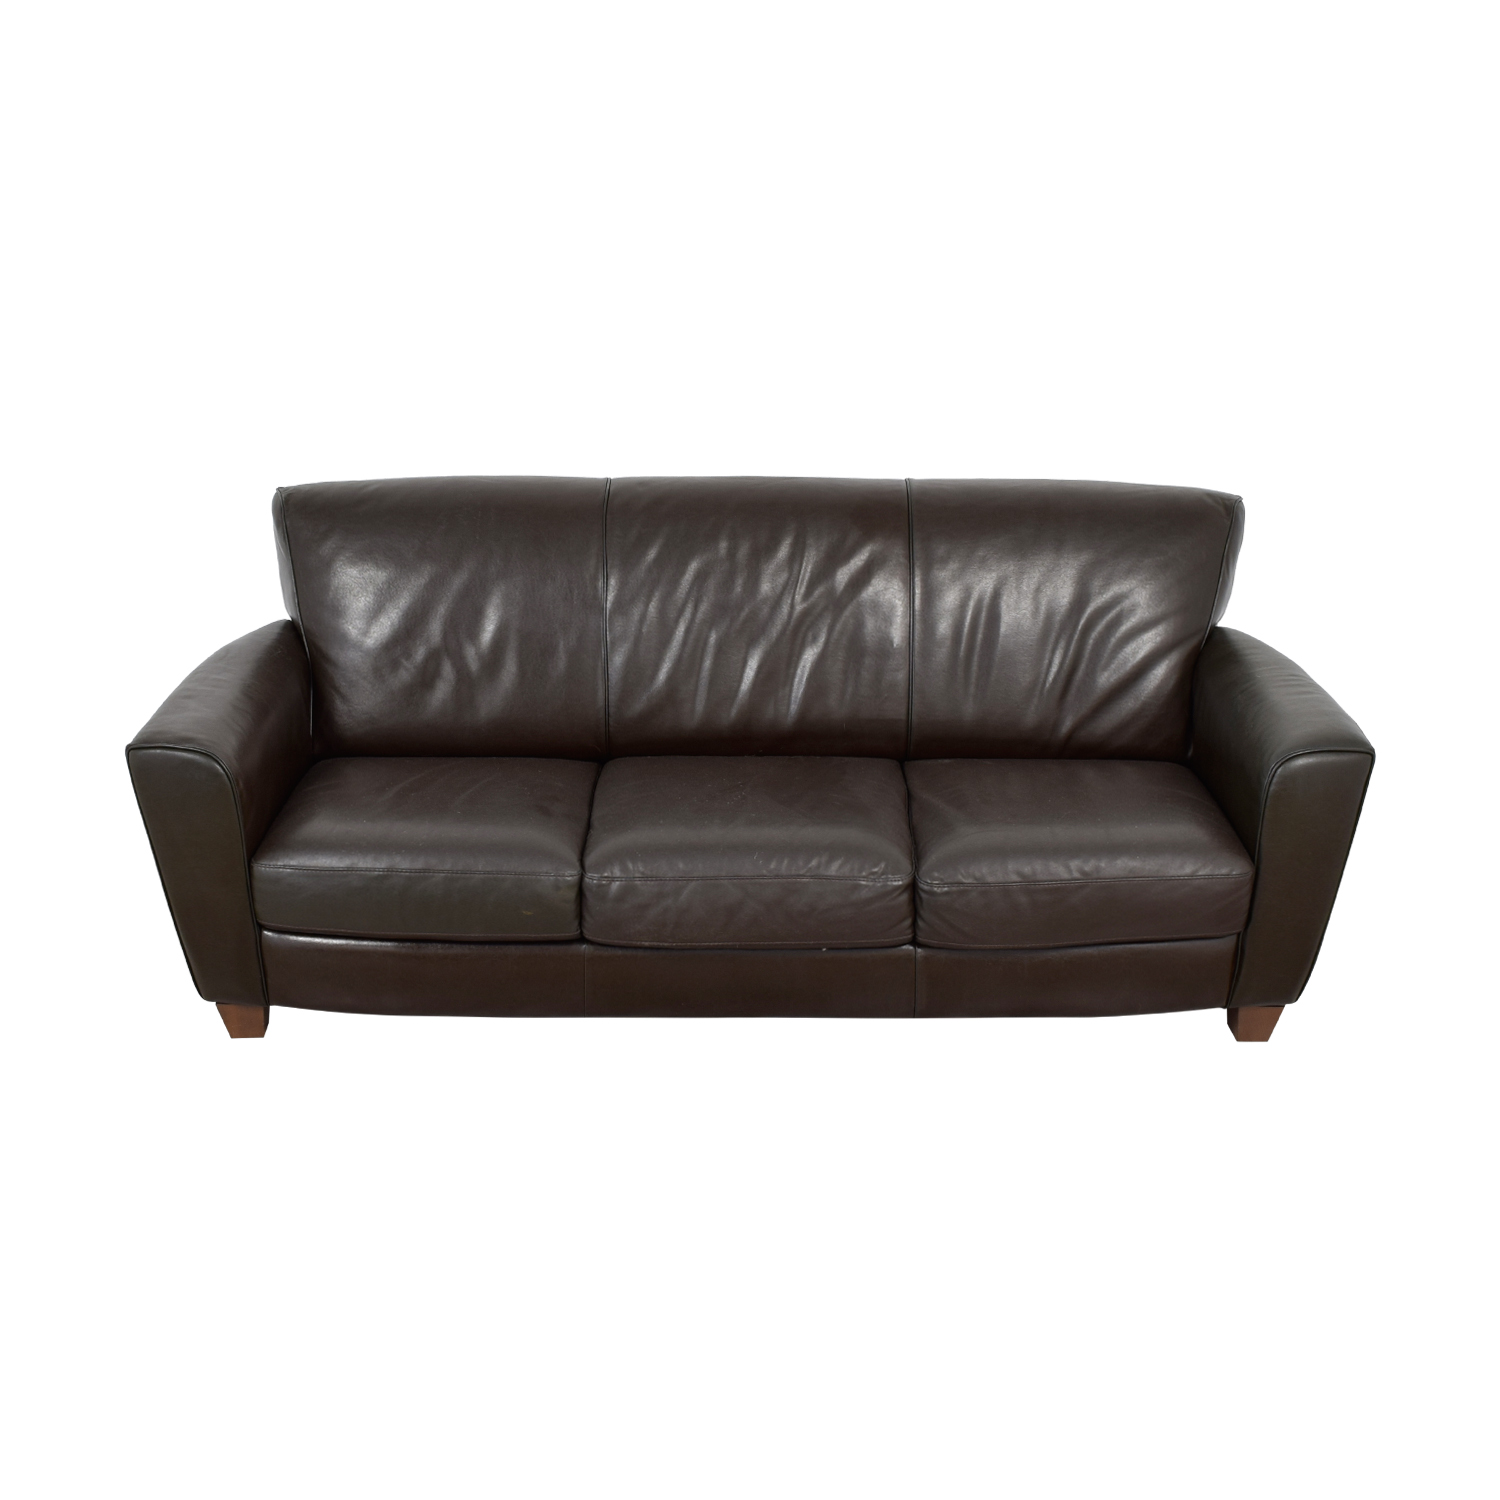 Natuzzi Natuzzi Brown Leather Three-Cushion Couch coupon